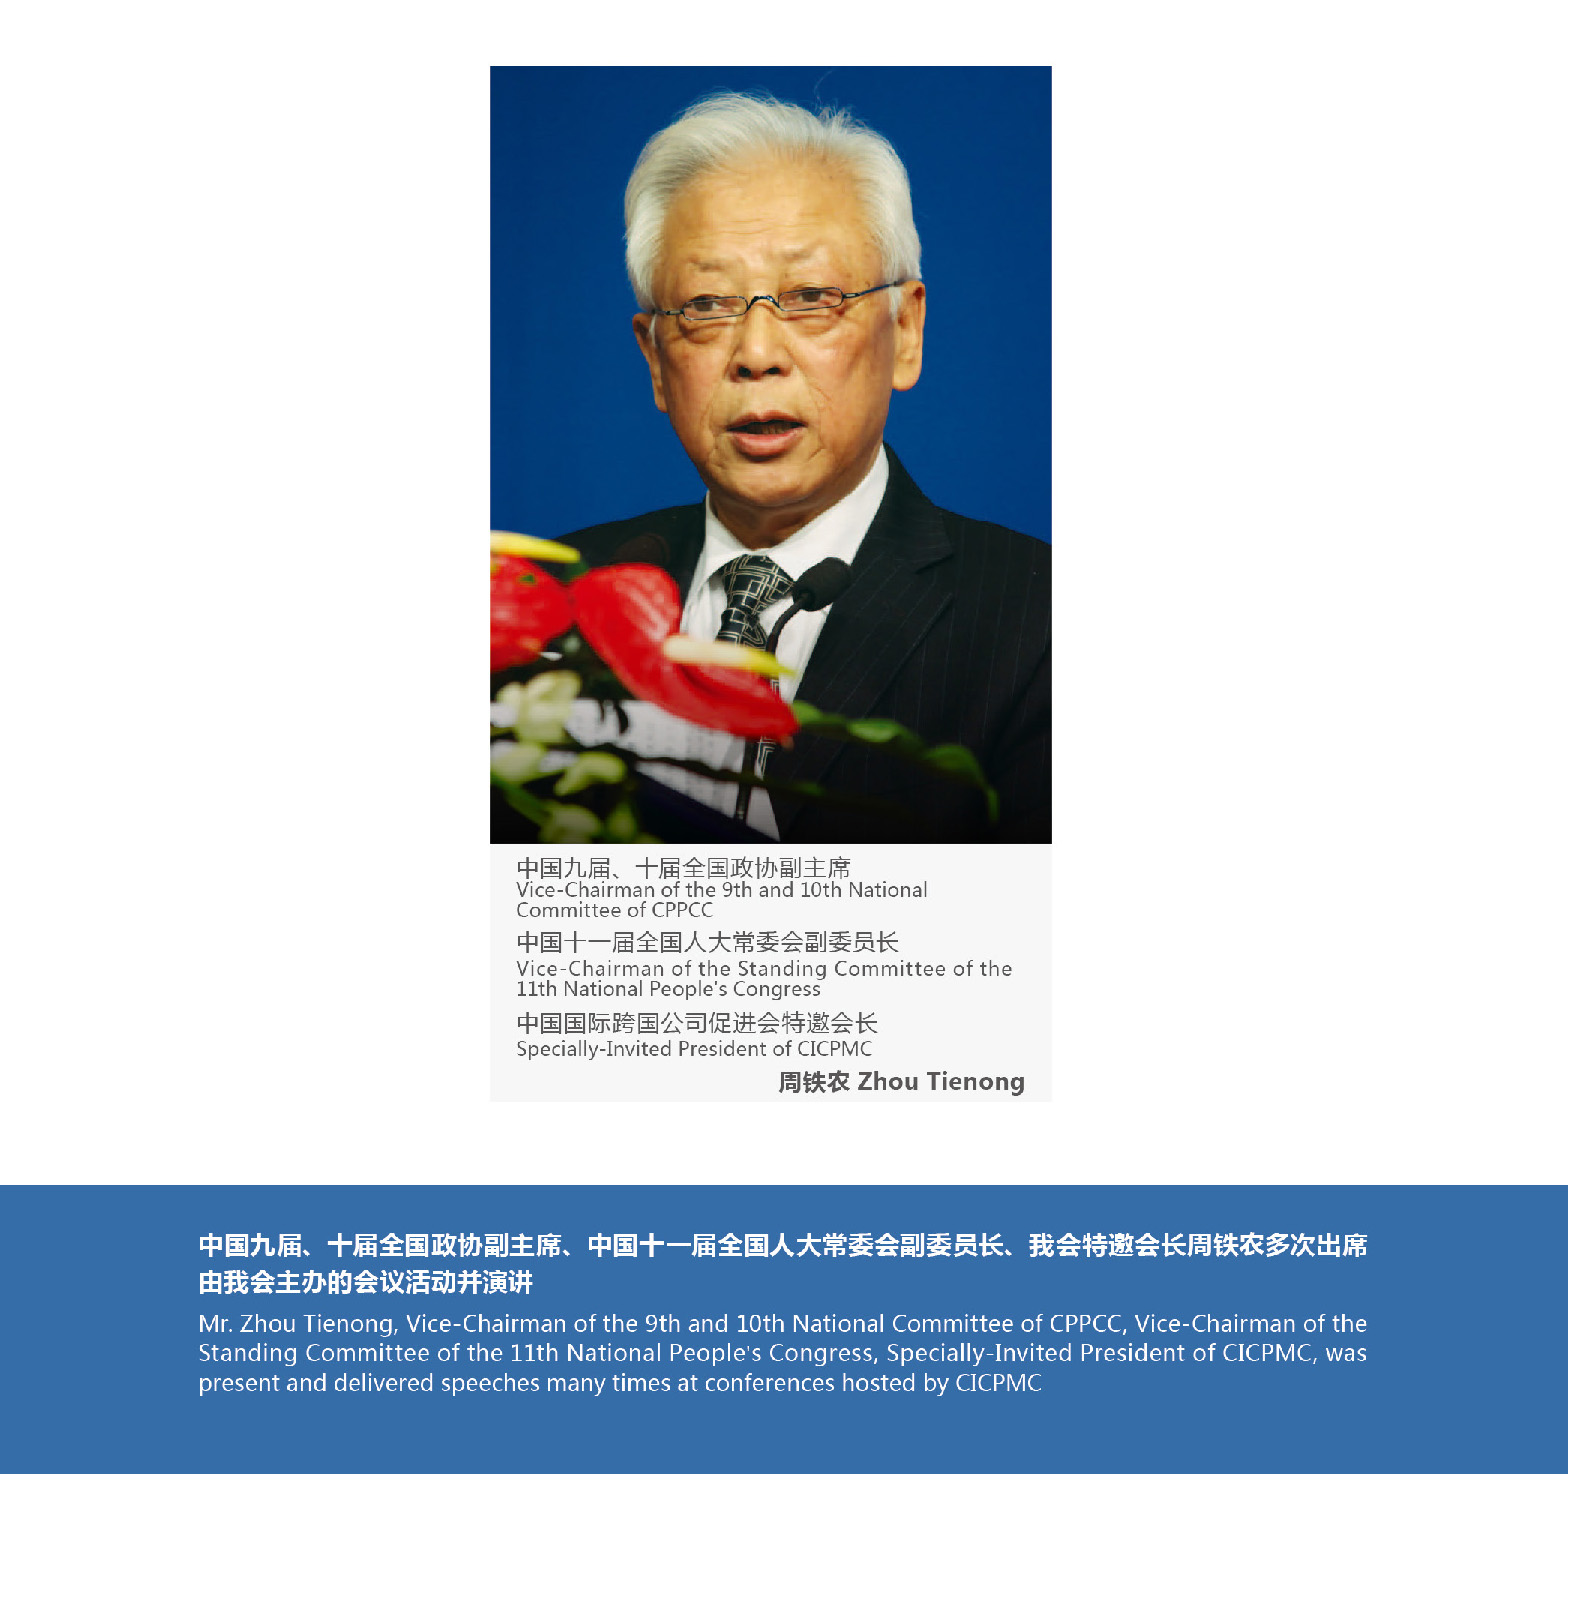 Mr. Zhou Tienong, Vice-Chairman of the 9th and 10th National Committee of CPPCC, Vice-Chairman of the Standing Committee of the 11th National People's Congress, Specially-Invited President of CICPMC, was present and delivered speeches many times at conferences hosted by CICPMC